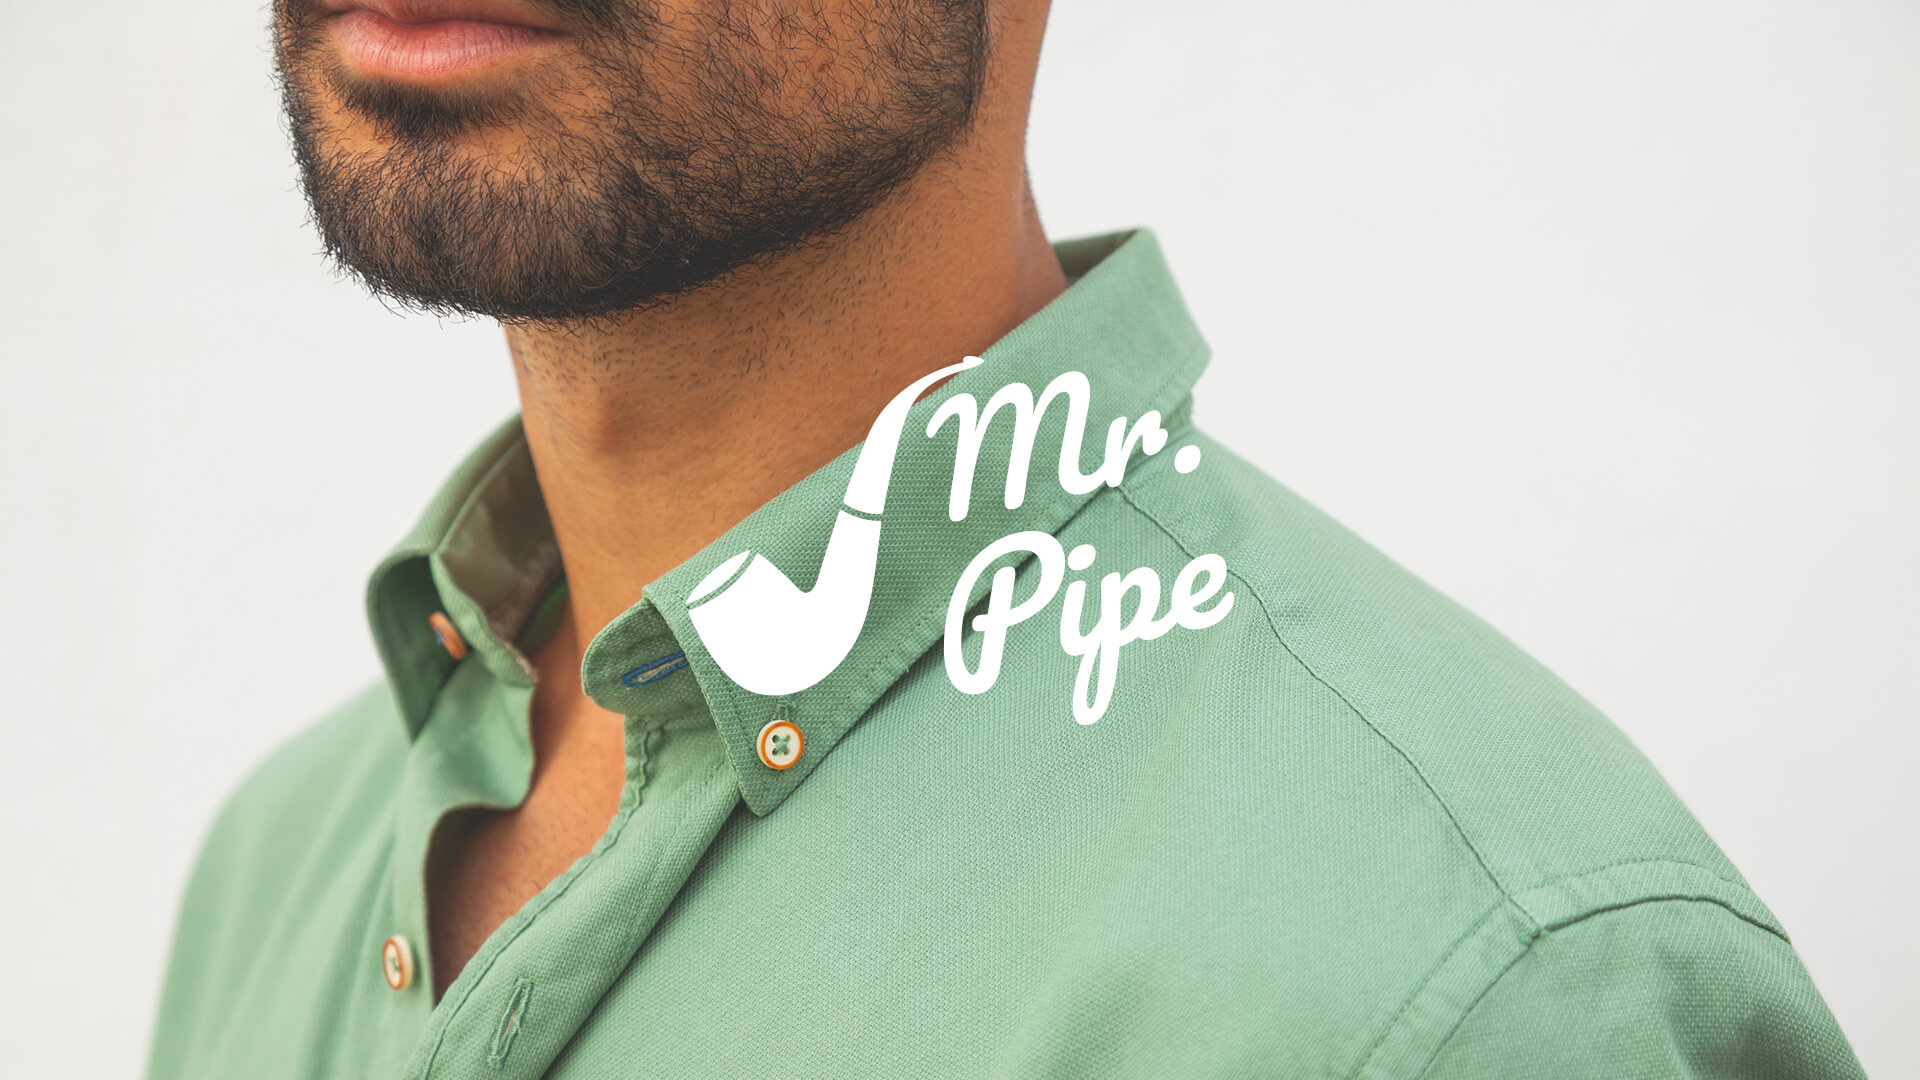 Shop online:Shop online Mr Pipe